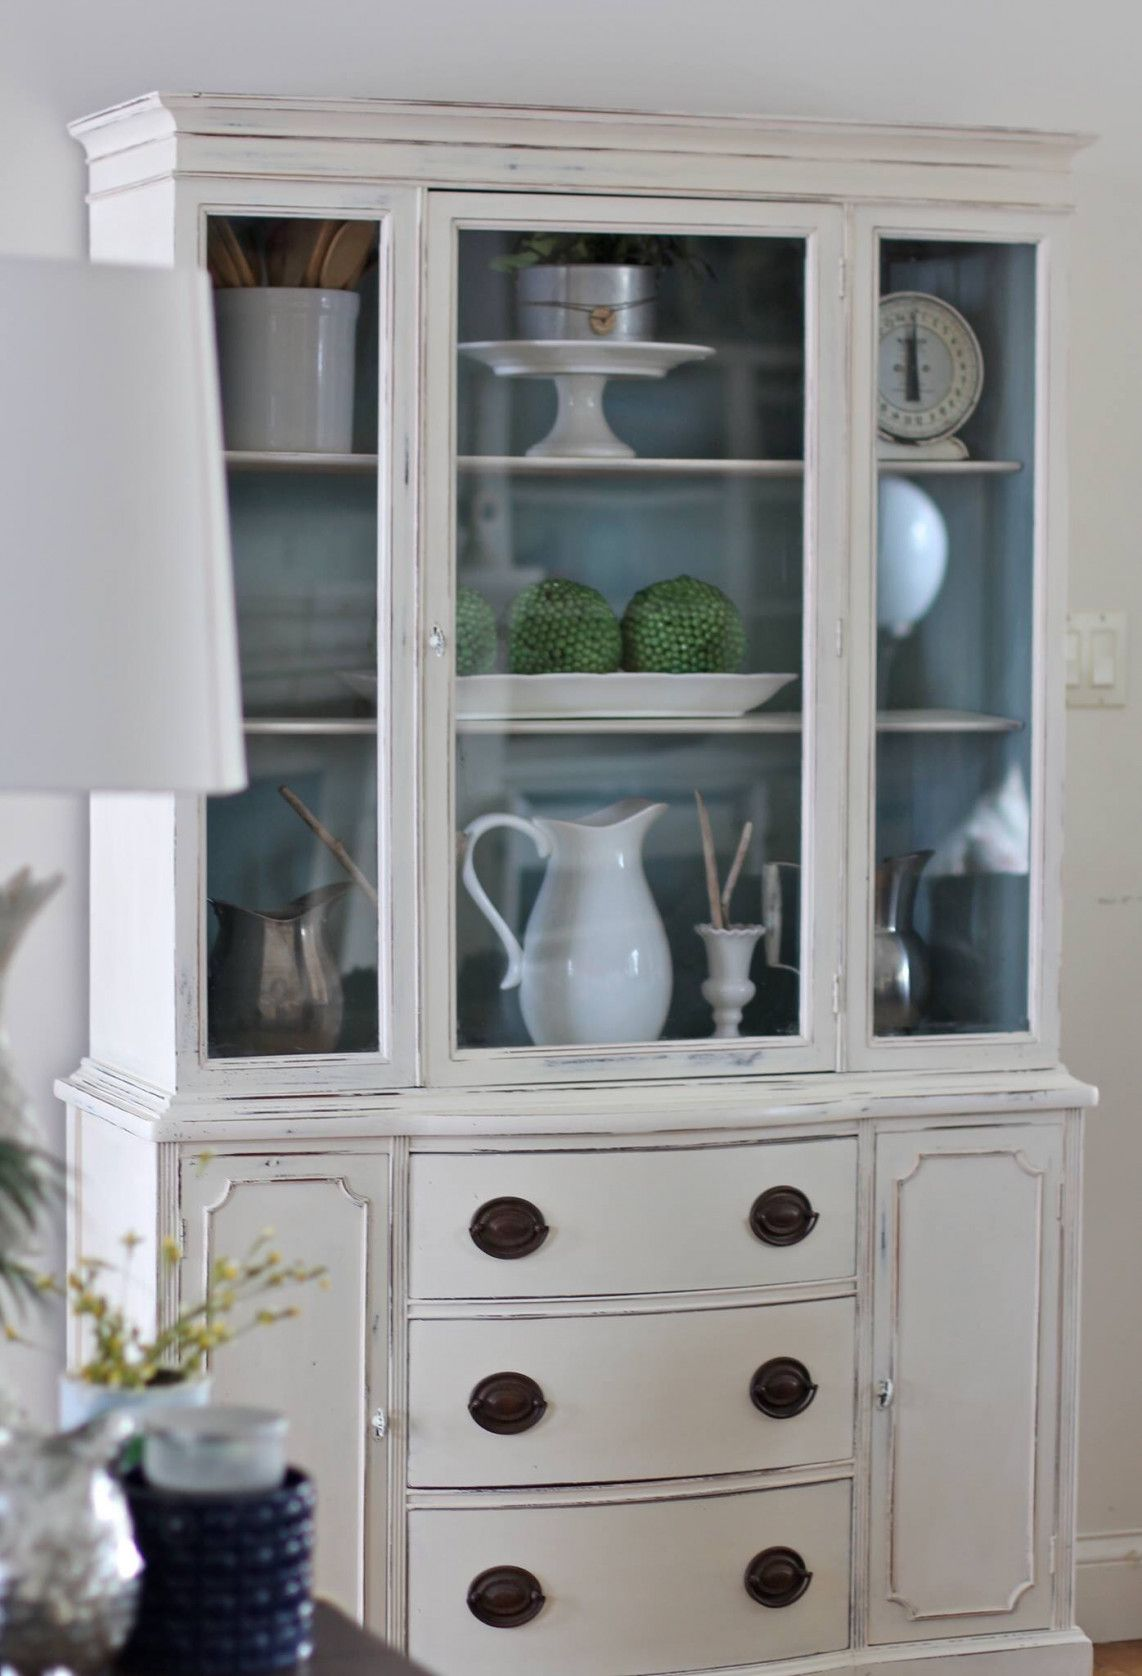 99+ Antique China Cabinet Hardware - Kitchen Decorating Ideas themes Check  more at http: - 99+ Antique China Cabinet Hardware - Kitchen Decorating Ideas Themes